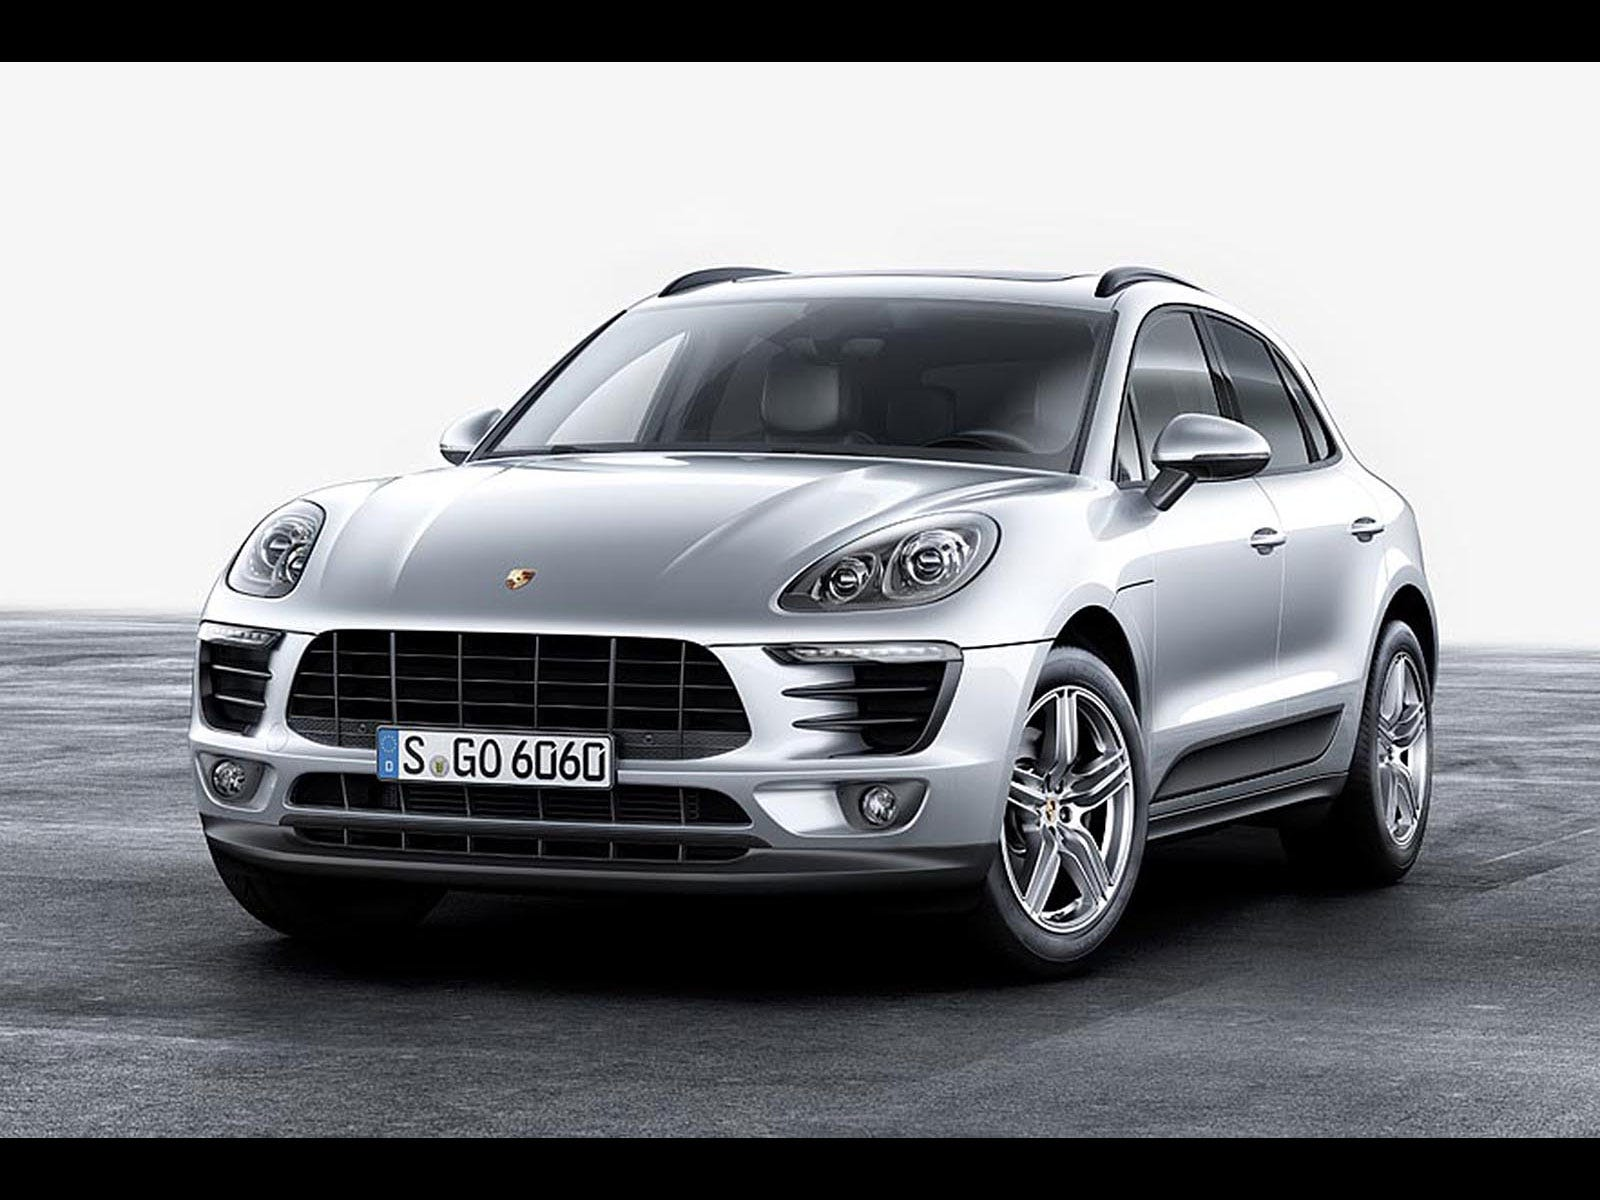 Porsche Macan SUV to be converted into electric vehicle